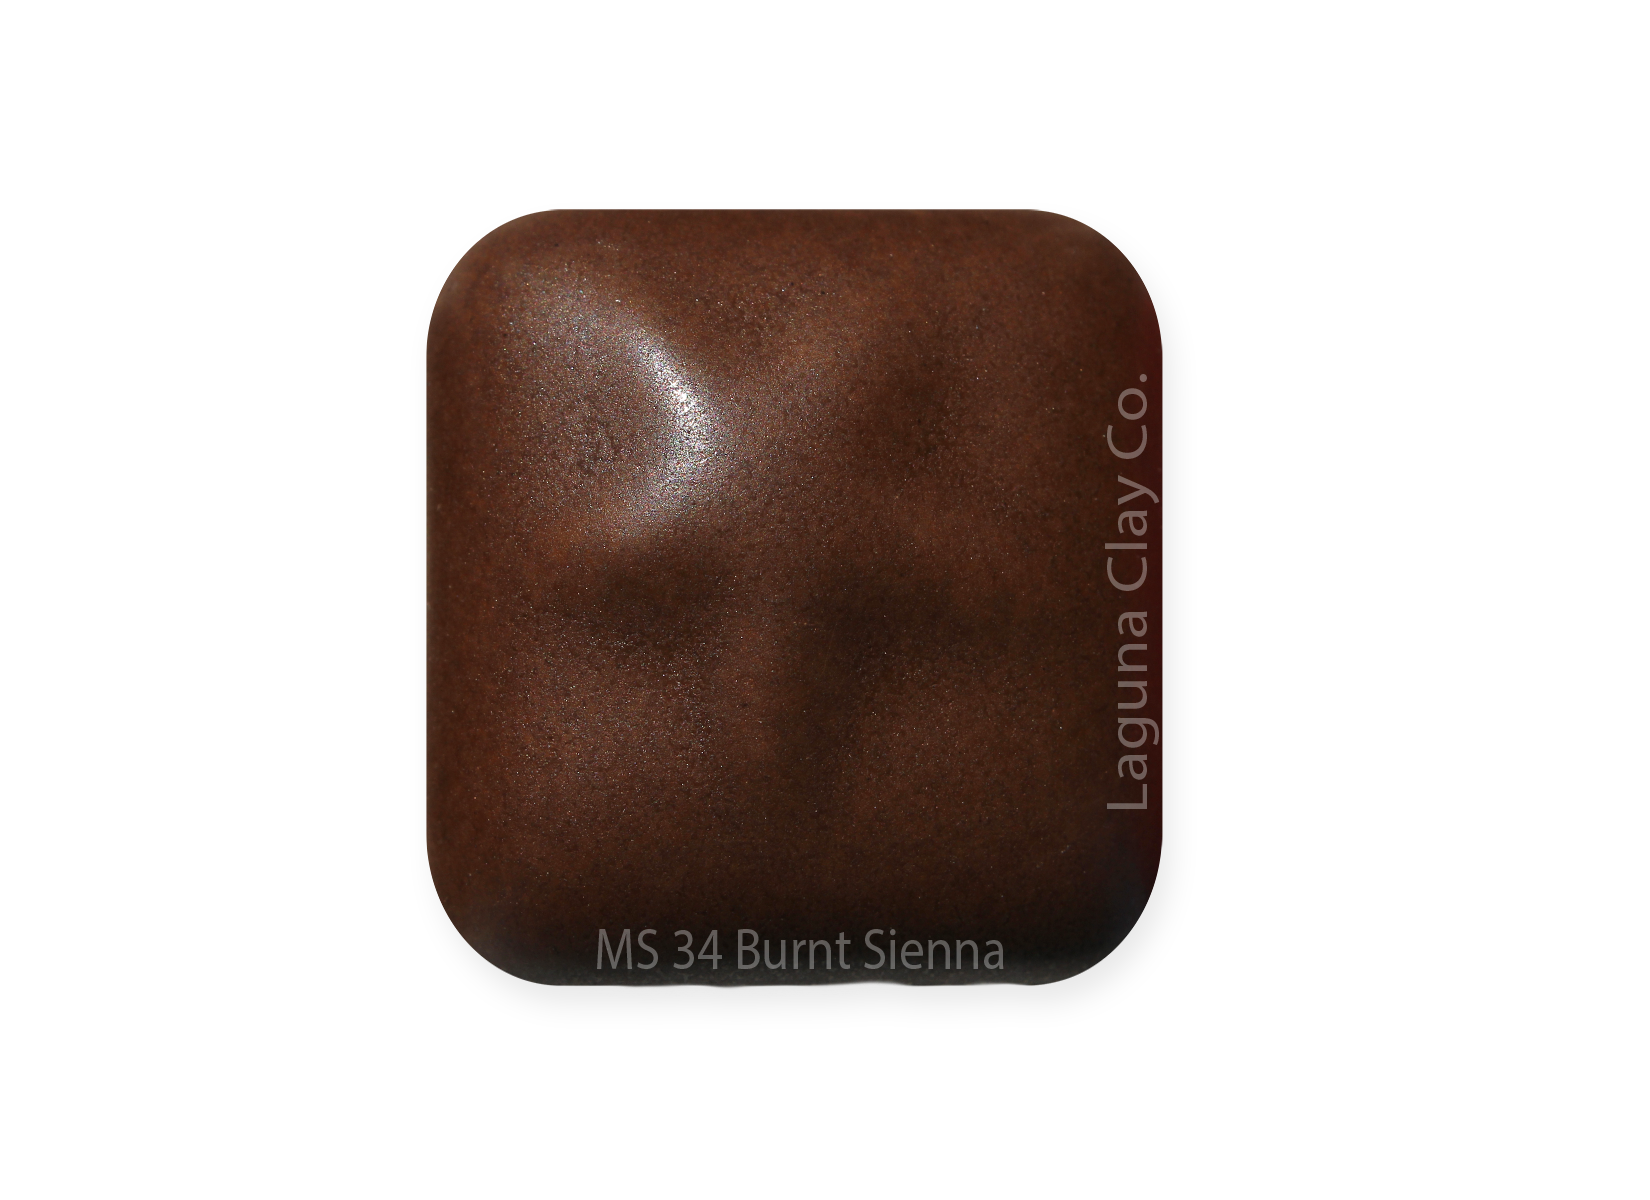 MS-34 Burnt Sienna